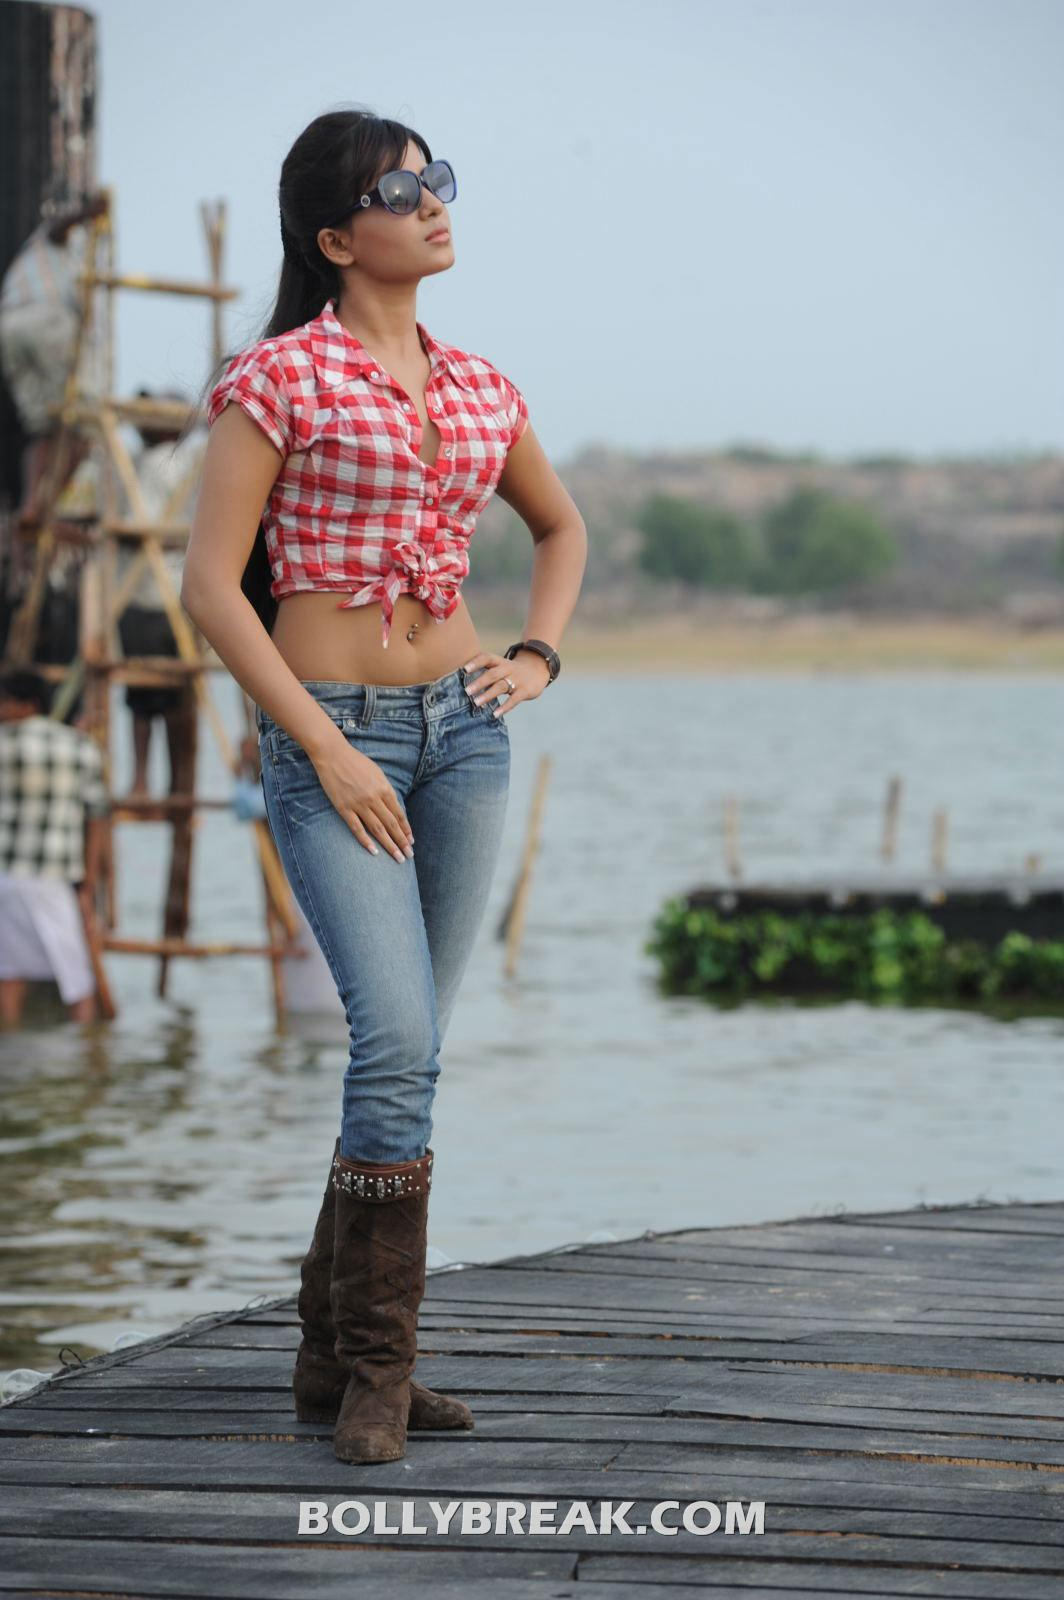 Samantha in blue jeans red top showing navel - Samantha Hot Navel Show Photo Gallery - Top & Tight Jeans